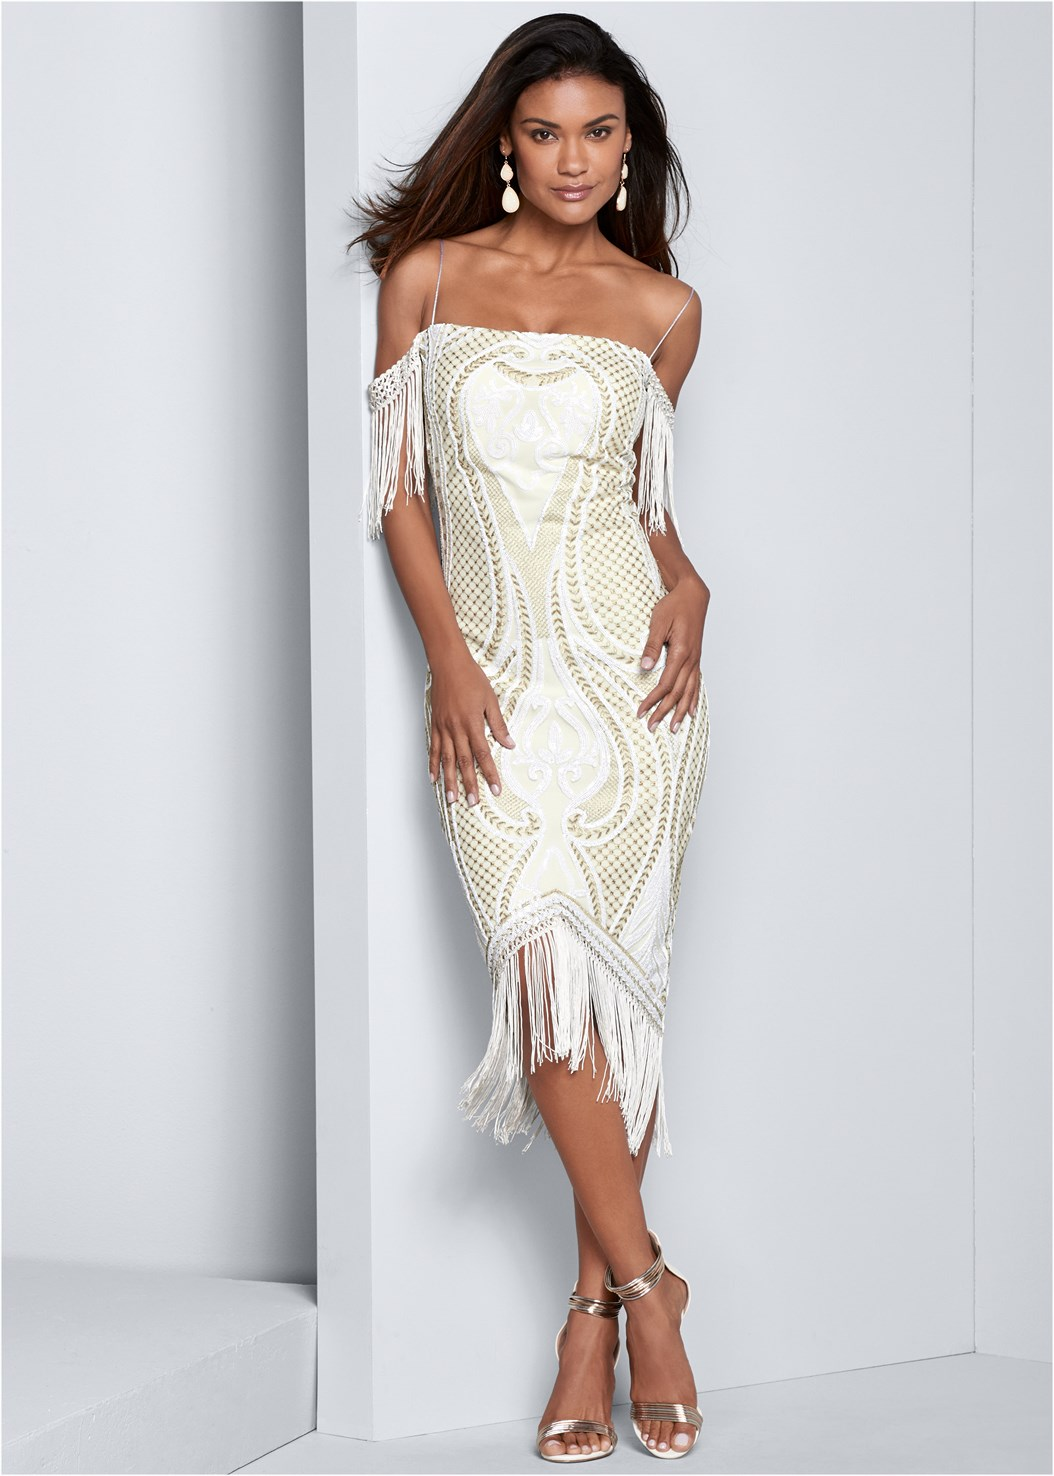 Sequin Fringe Bodycon Dress,Metallic Strap Heels